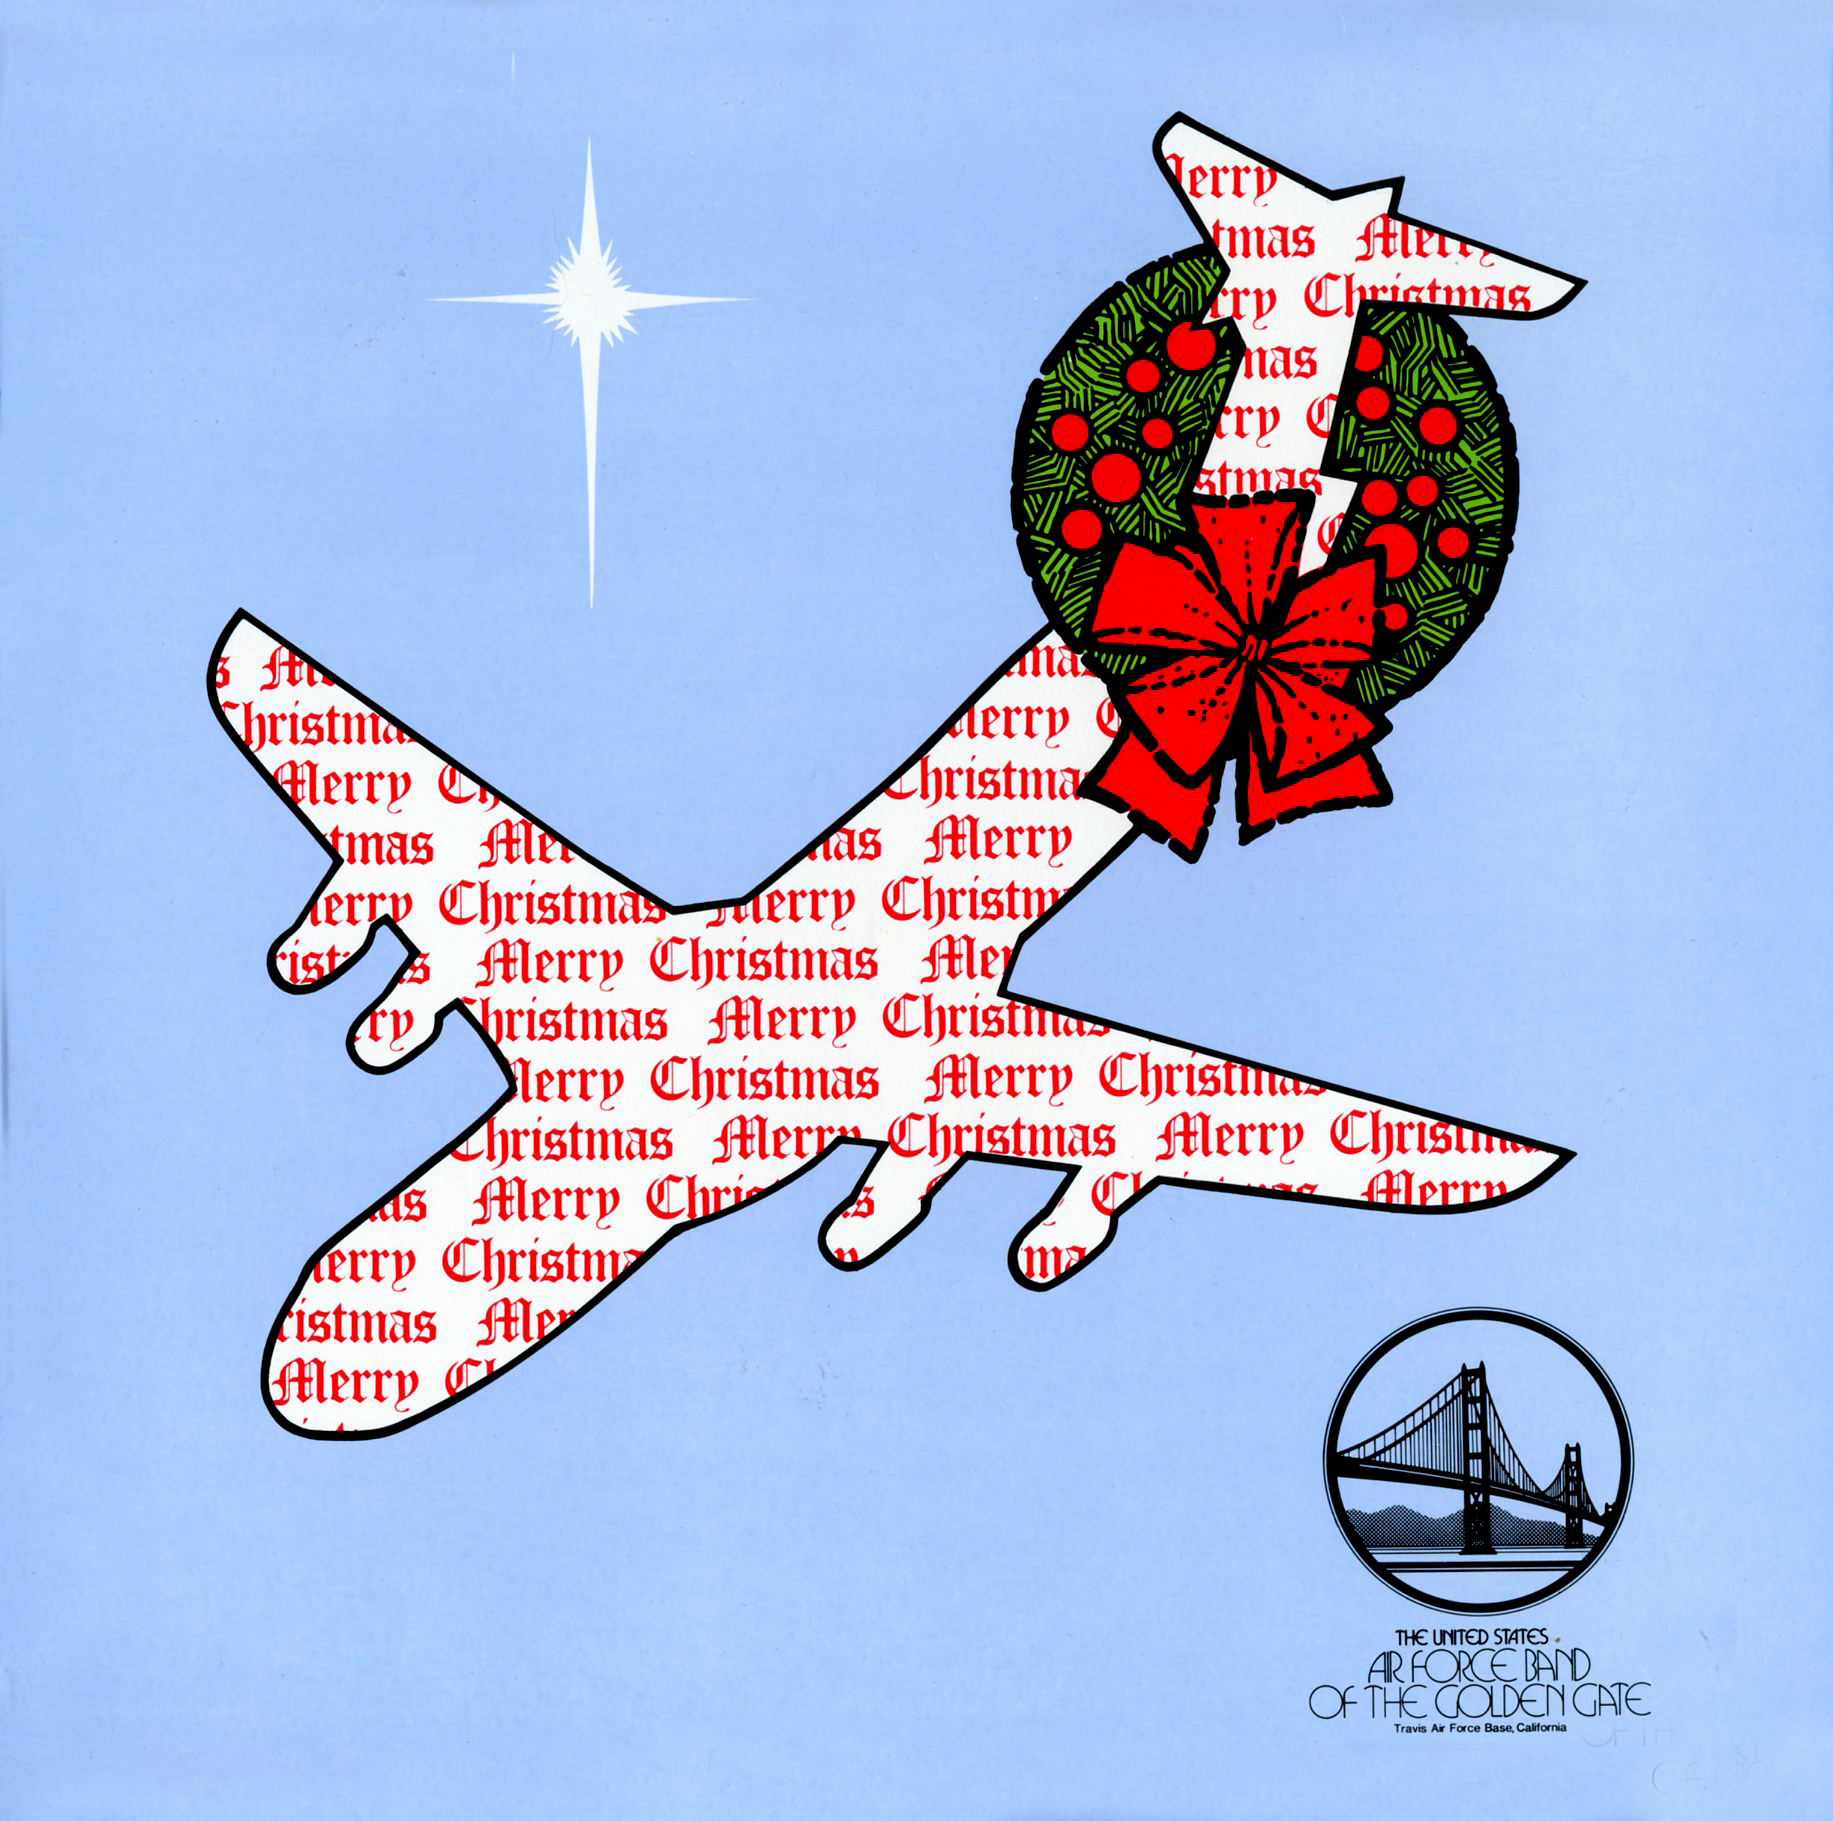 KM14734 - US Air Force Merry Christmas Air Force Band of the Golden Gate Travis AFB, CA